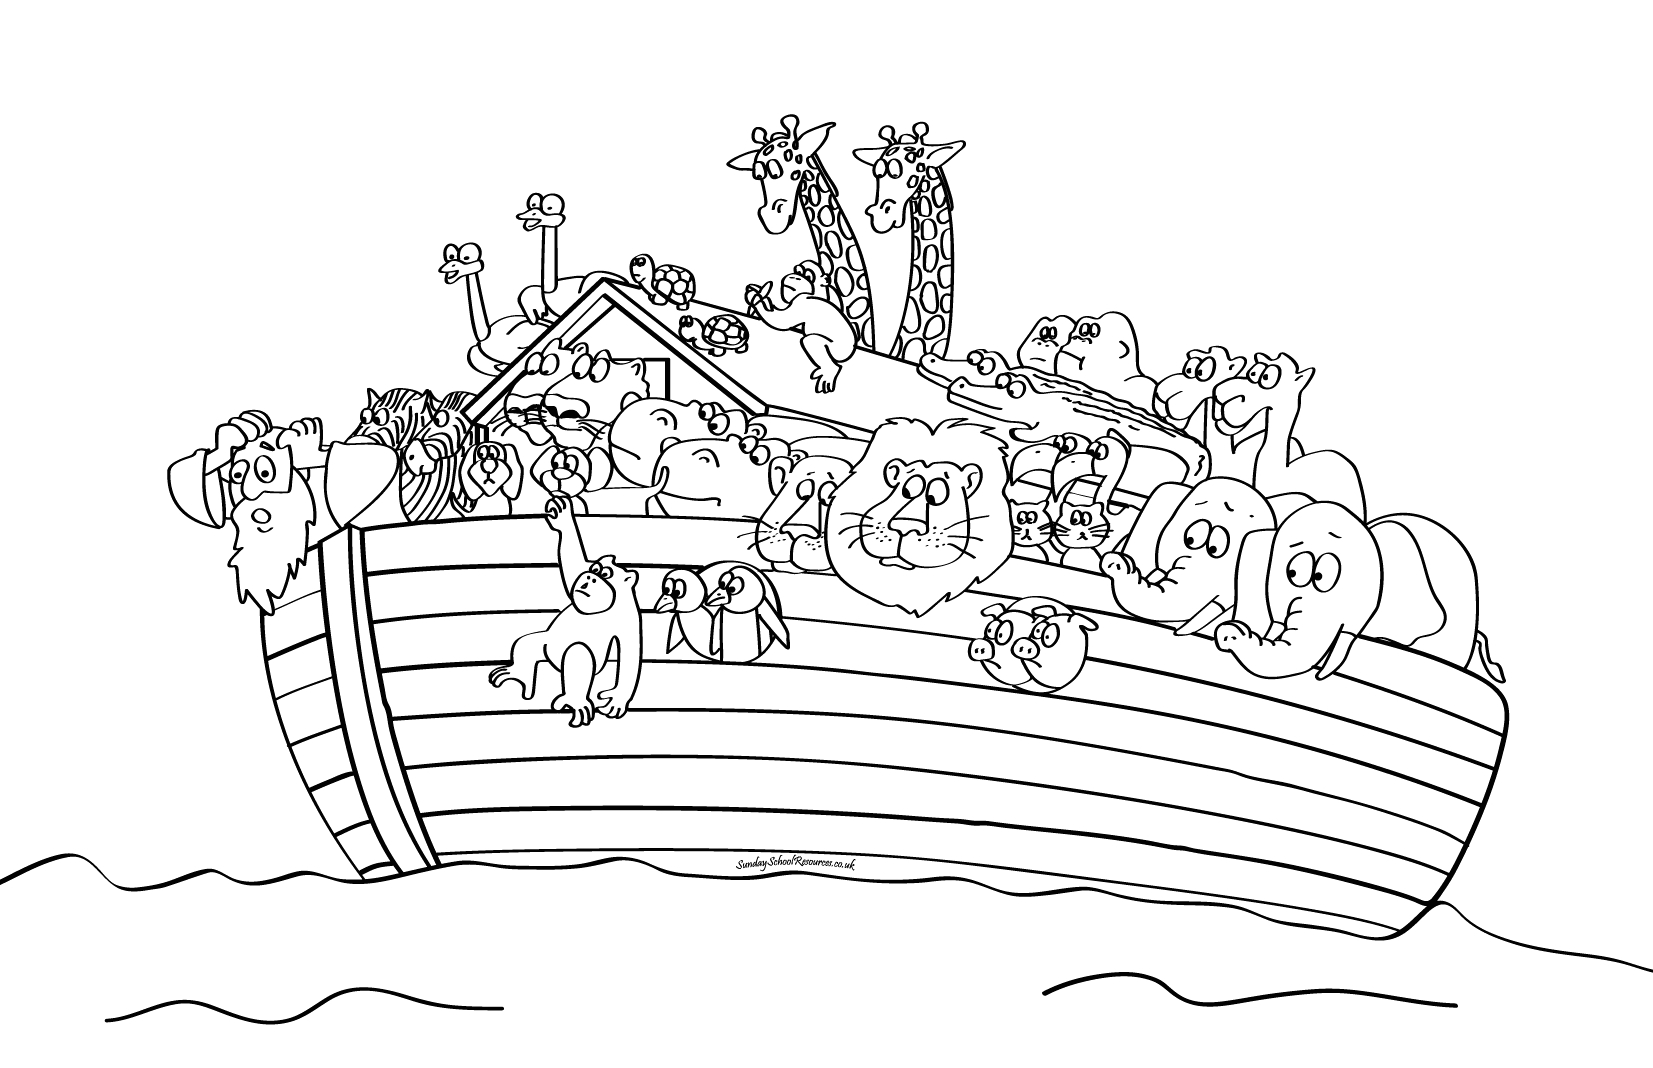 Noah and the Ark Coloring Pages to Print Sunday School Noah S Ark Bible Coloring Pages